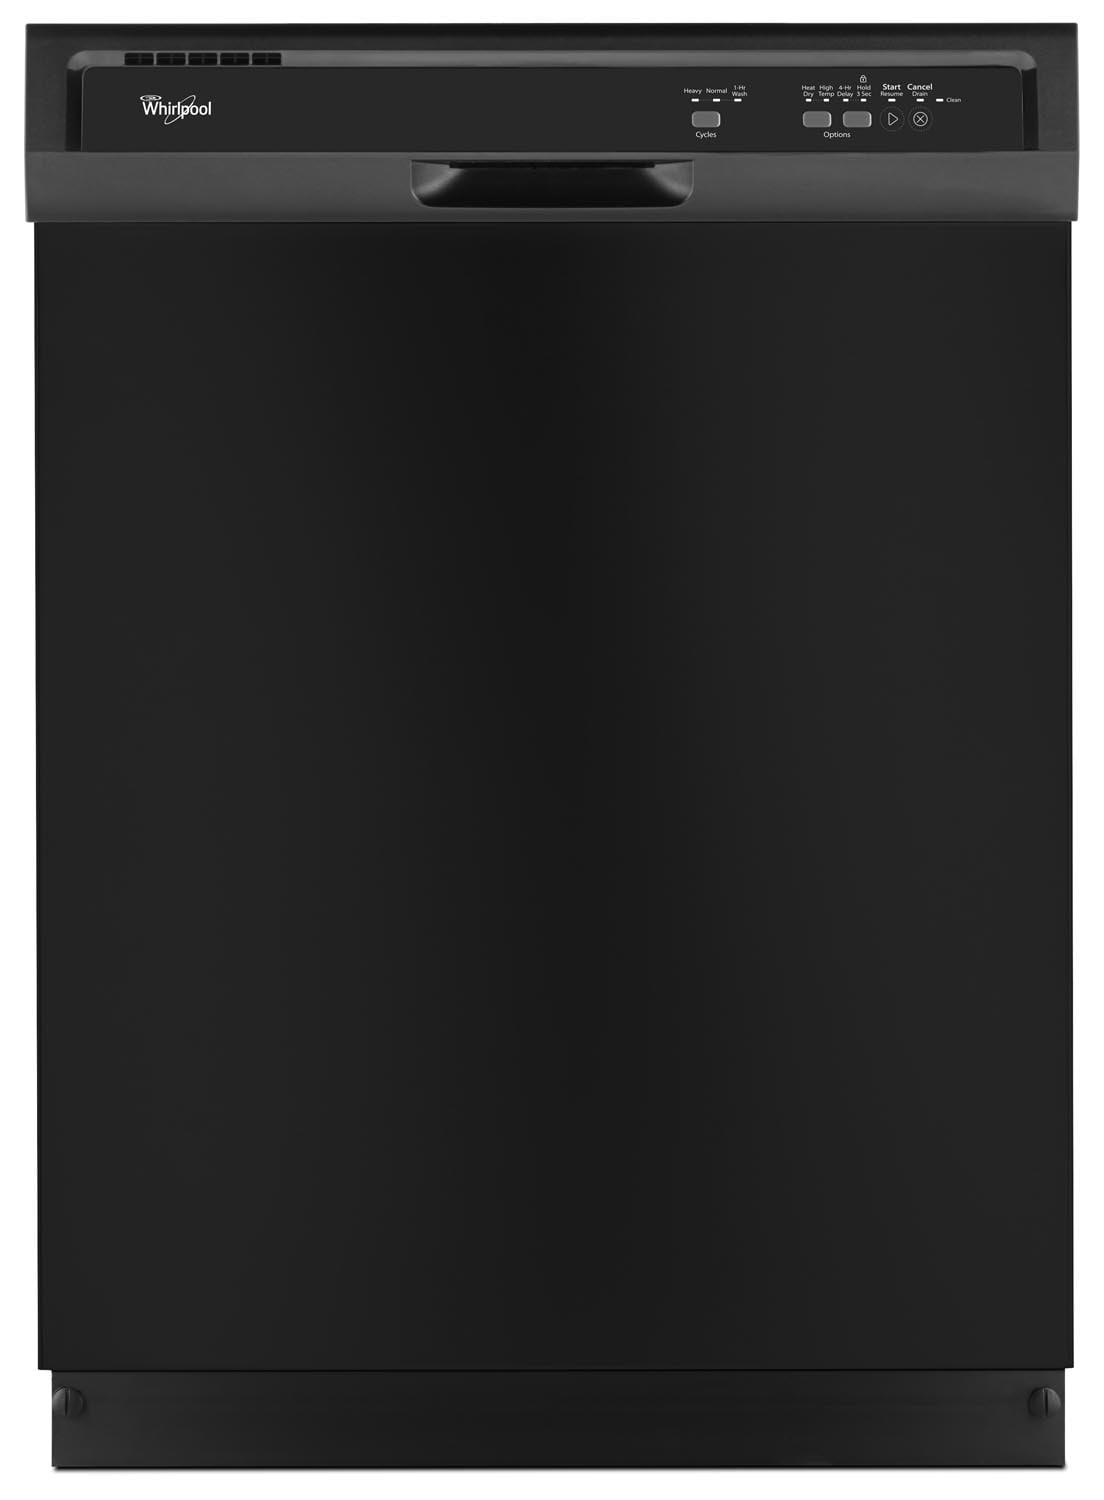 "Clean-Up - Whirlpool Black 24"" Dishwasher - WDF320PADB"